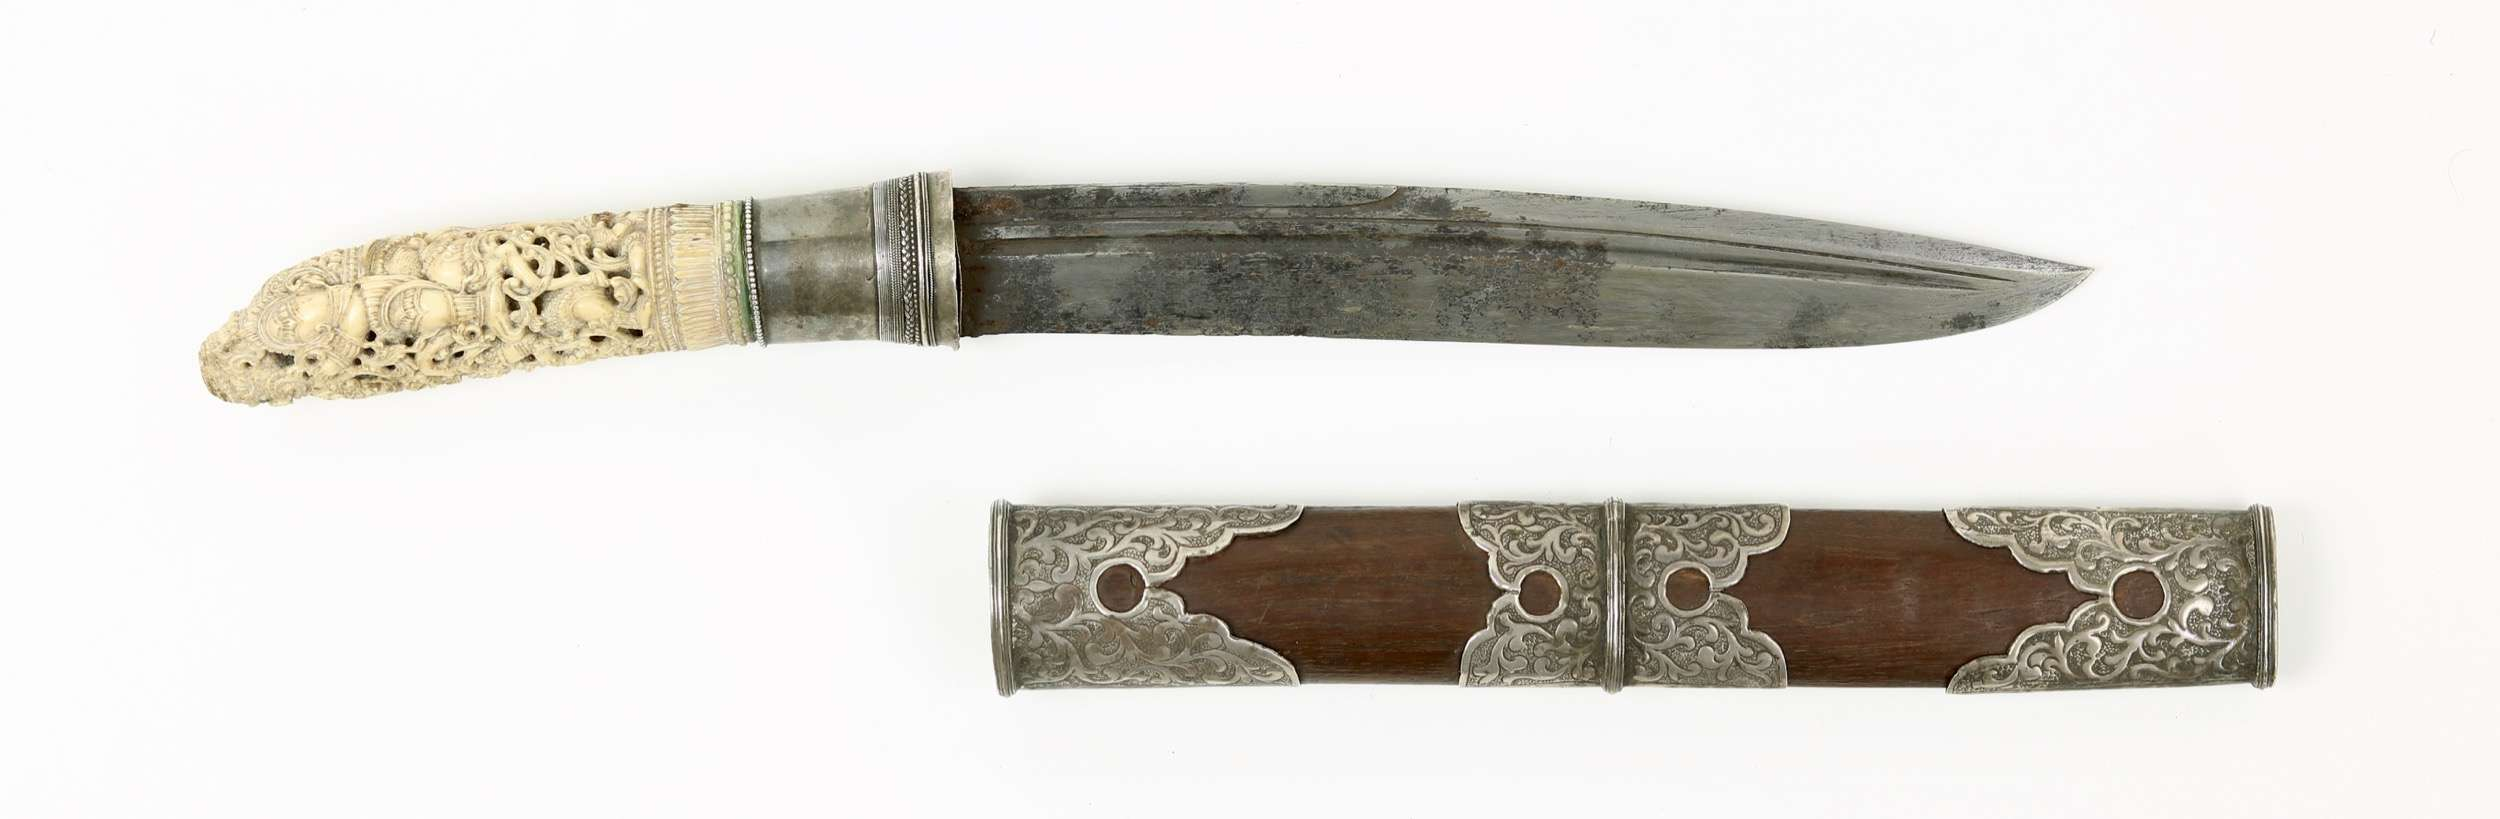 Fine Burmese dha hmyaung with carved ivory hilt